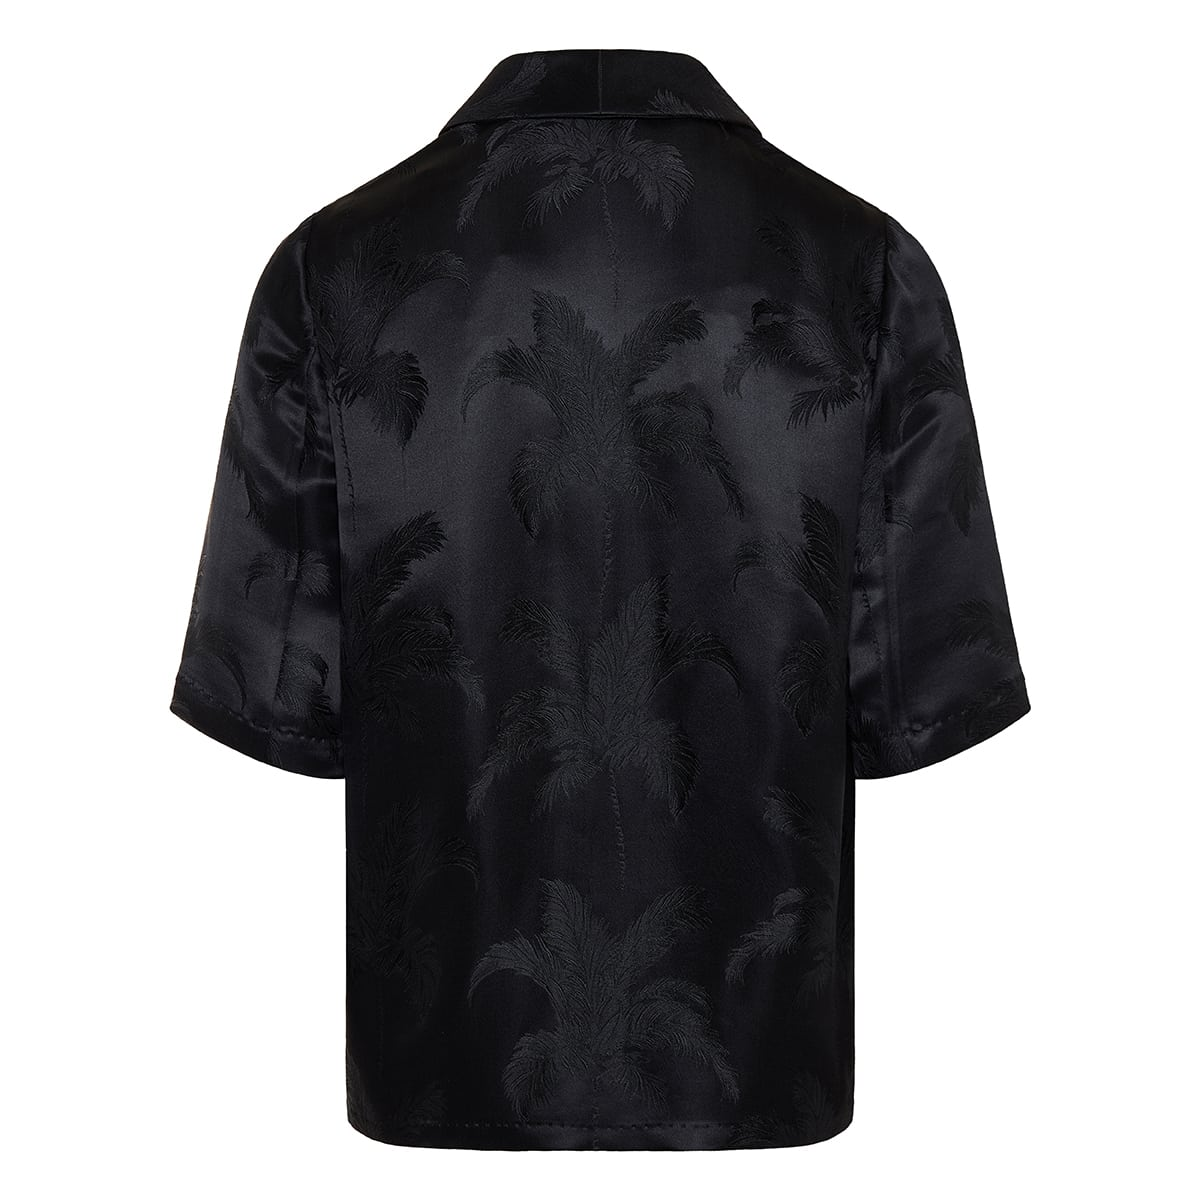 Palm jacquard satin shirt